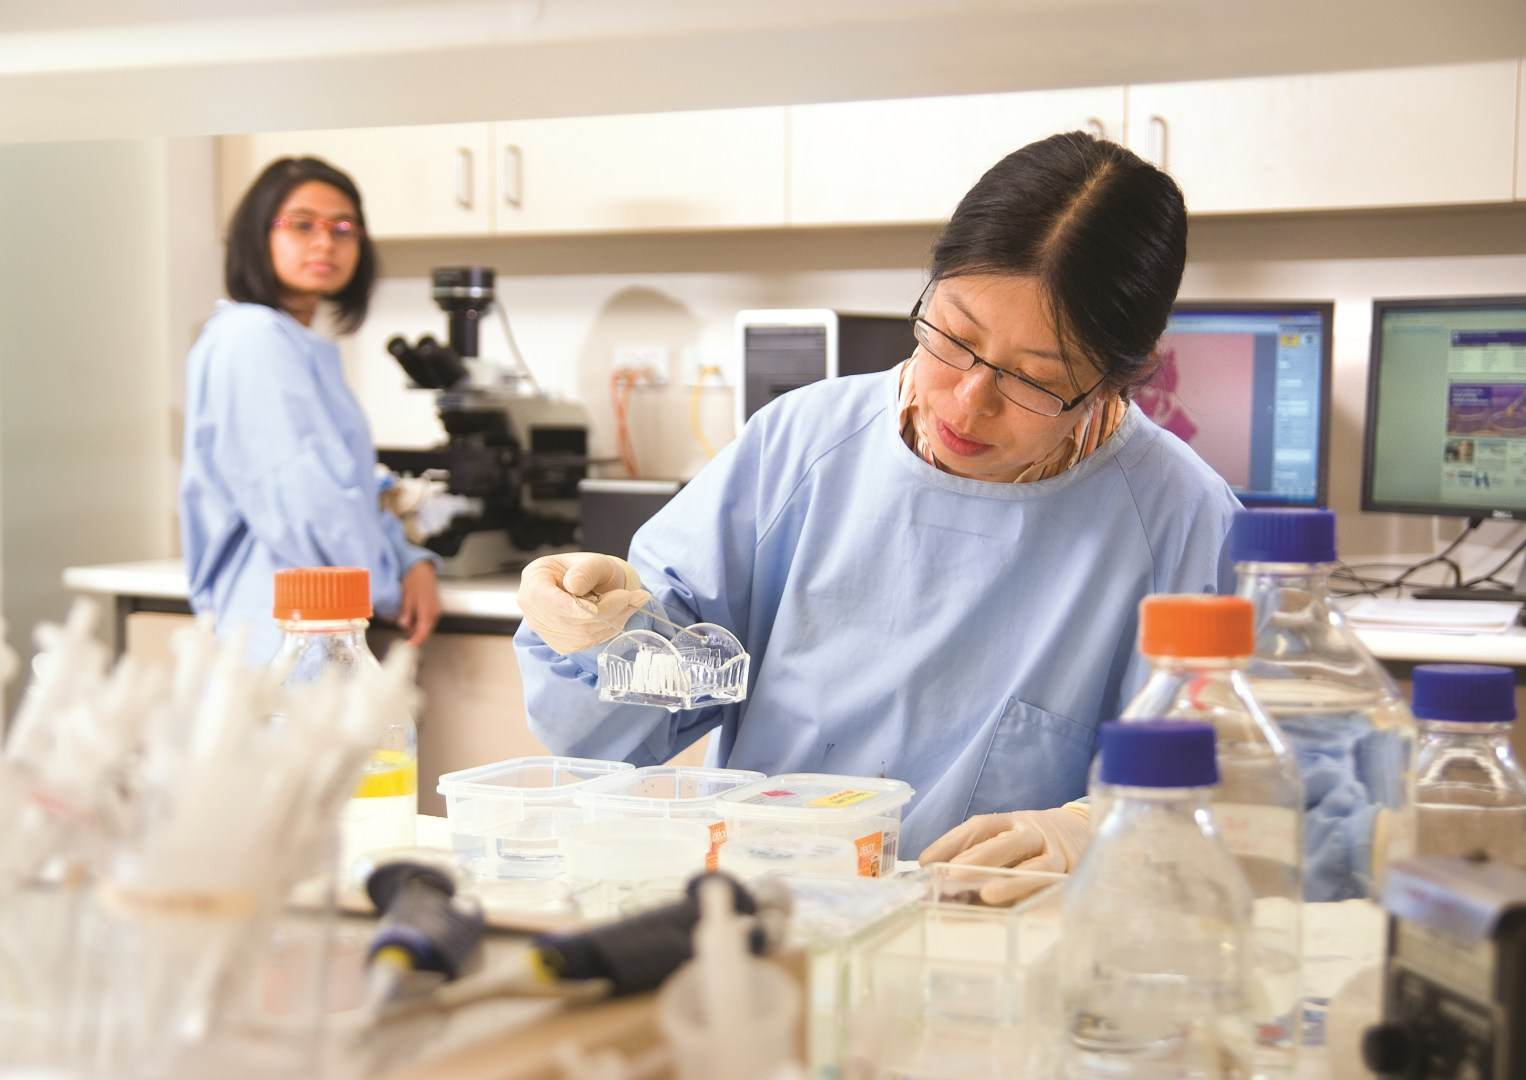 Biomedical research student using campus research facilities